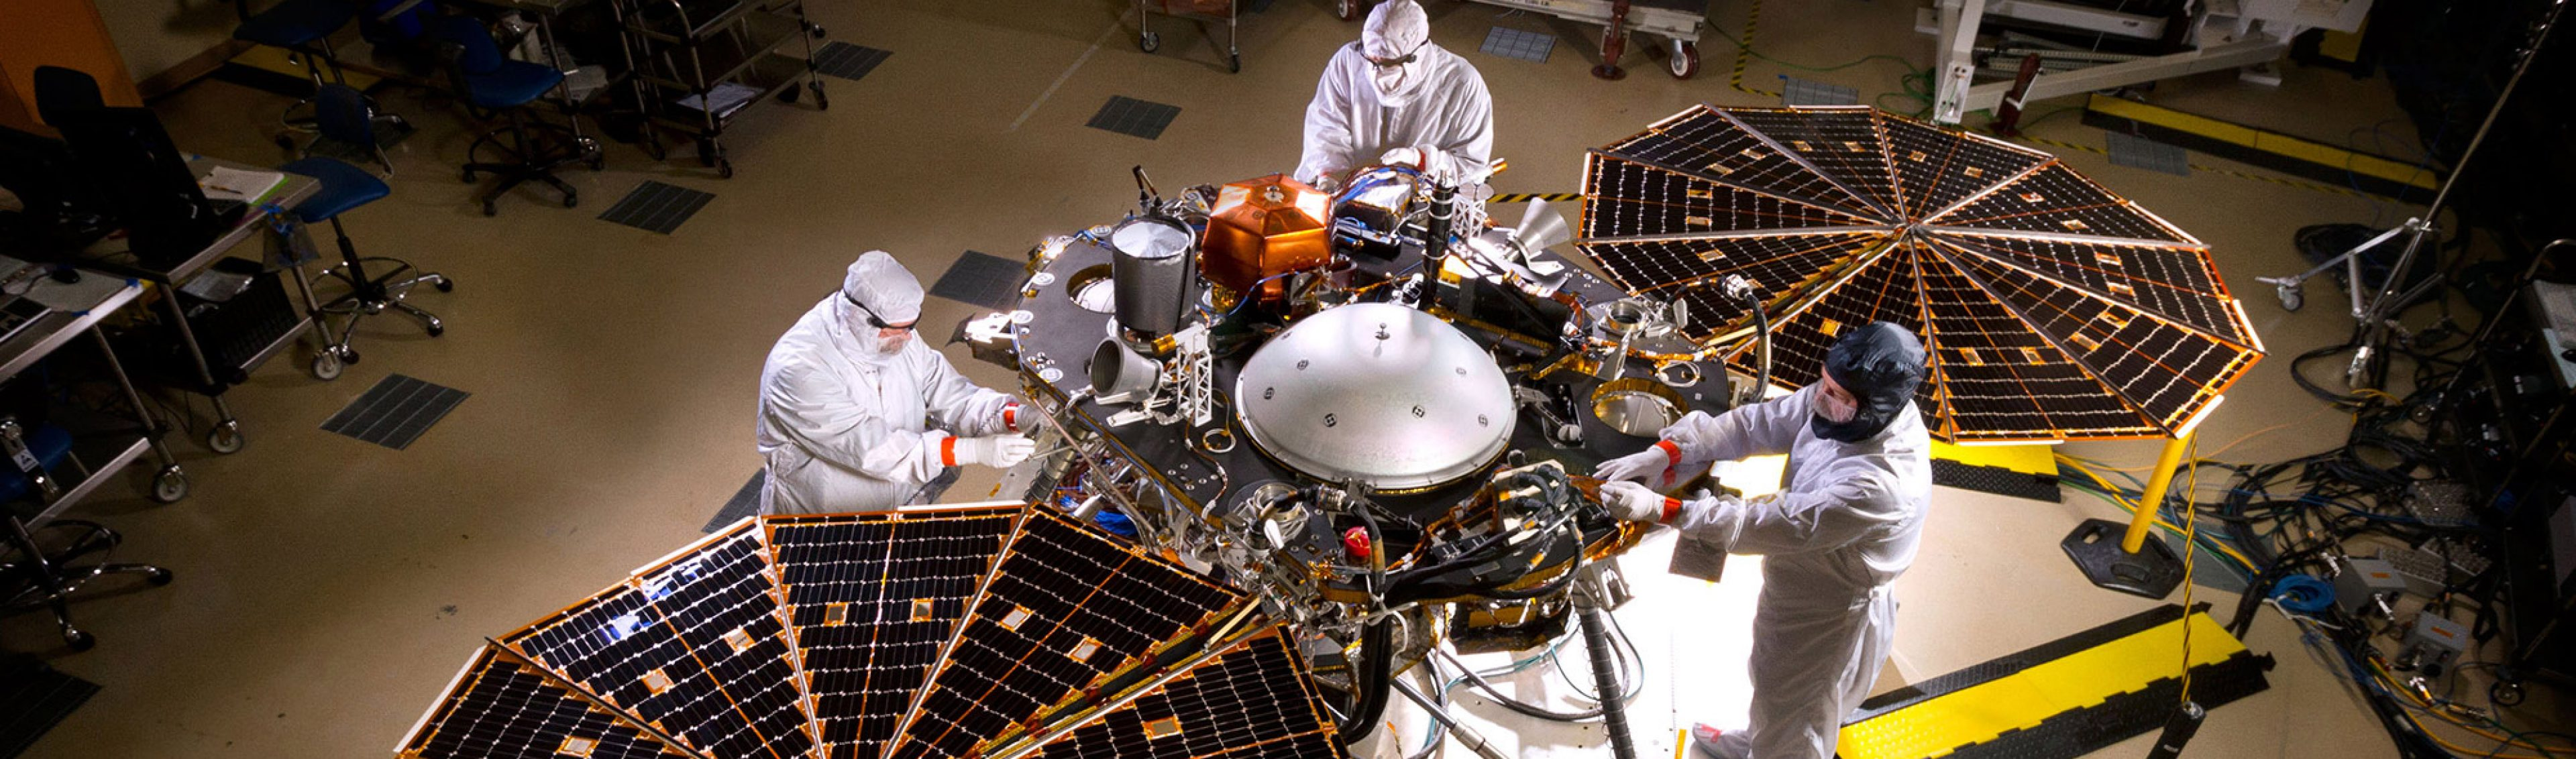 InSight Lander in Mars surface configuration. Image courtesy of NASA/JPL-CALTECH/LOCKHEED MARTIN